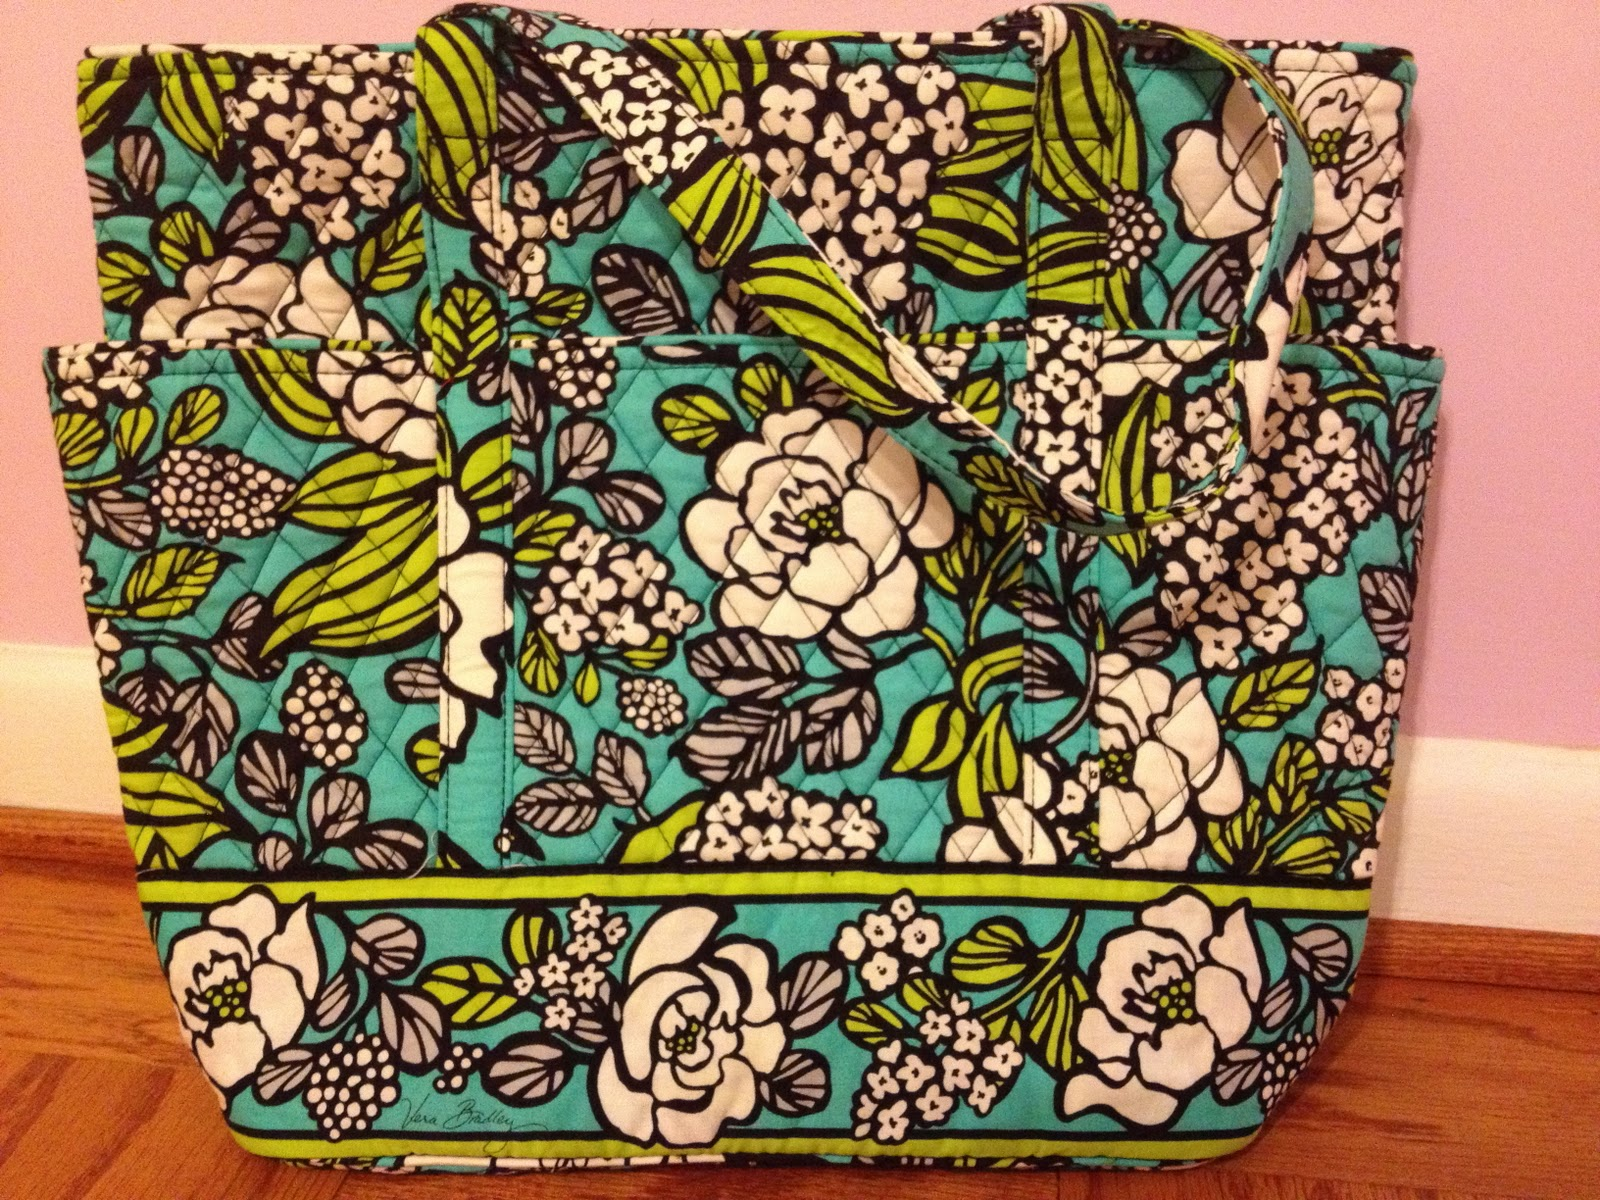 bdb7c3f39f I love my new tote! I had never really looked at the Go Round Tote before